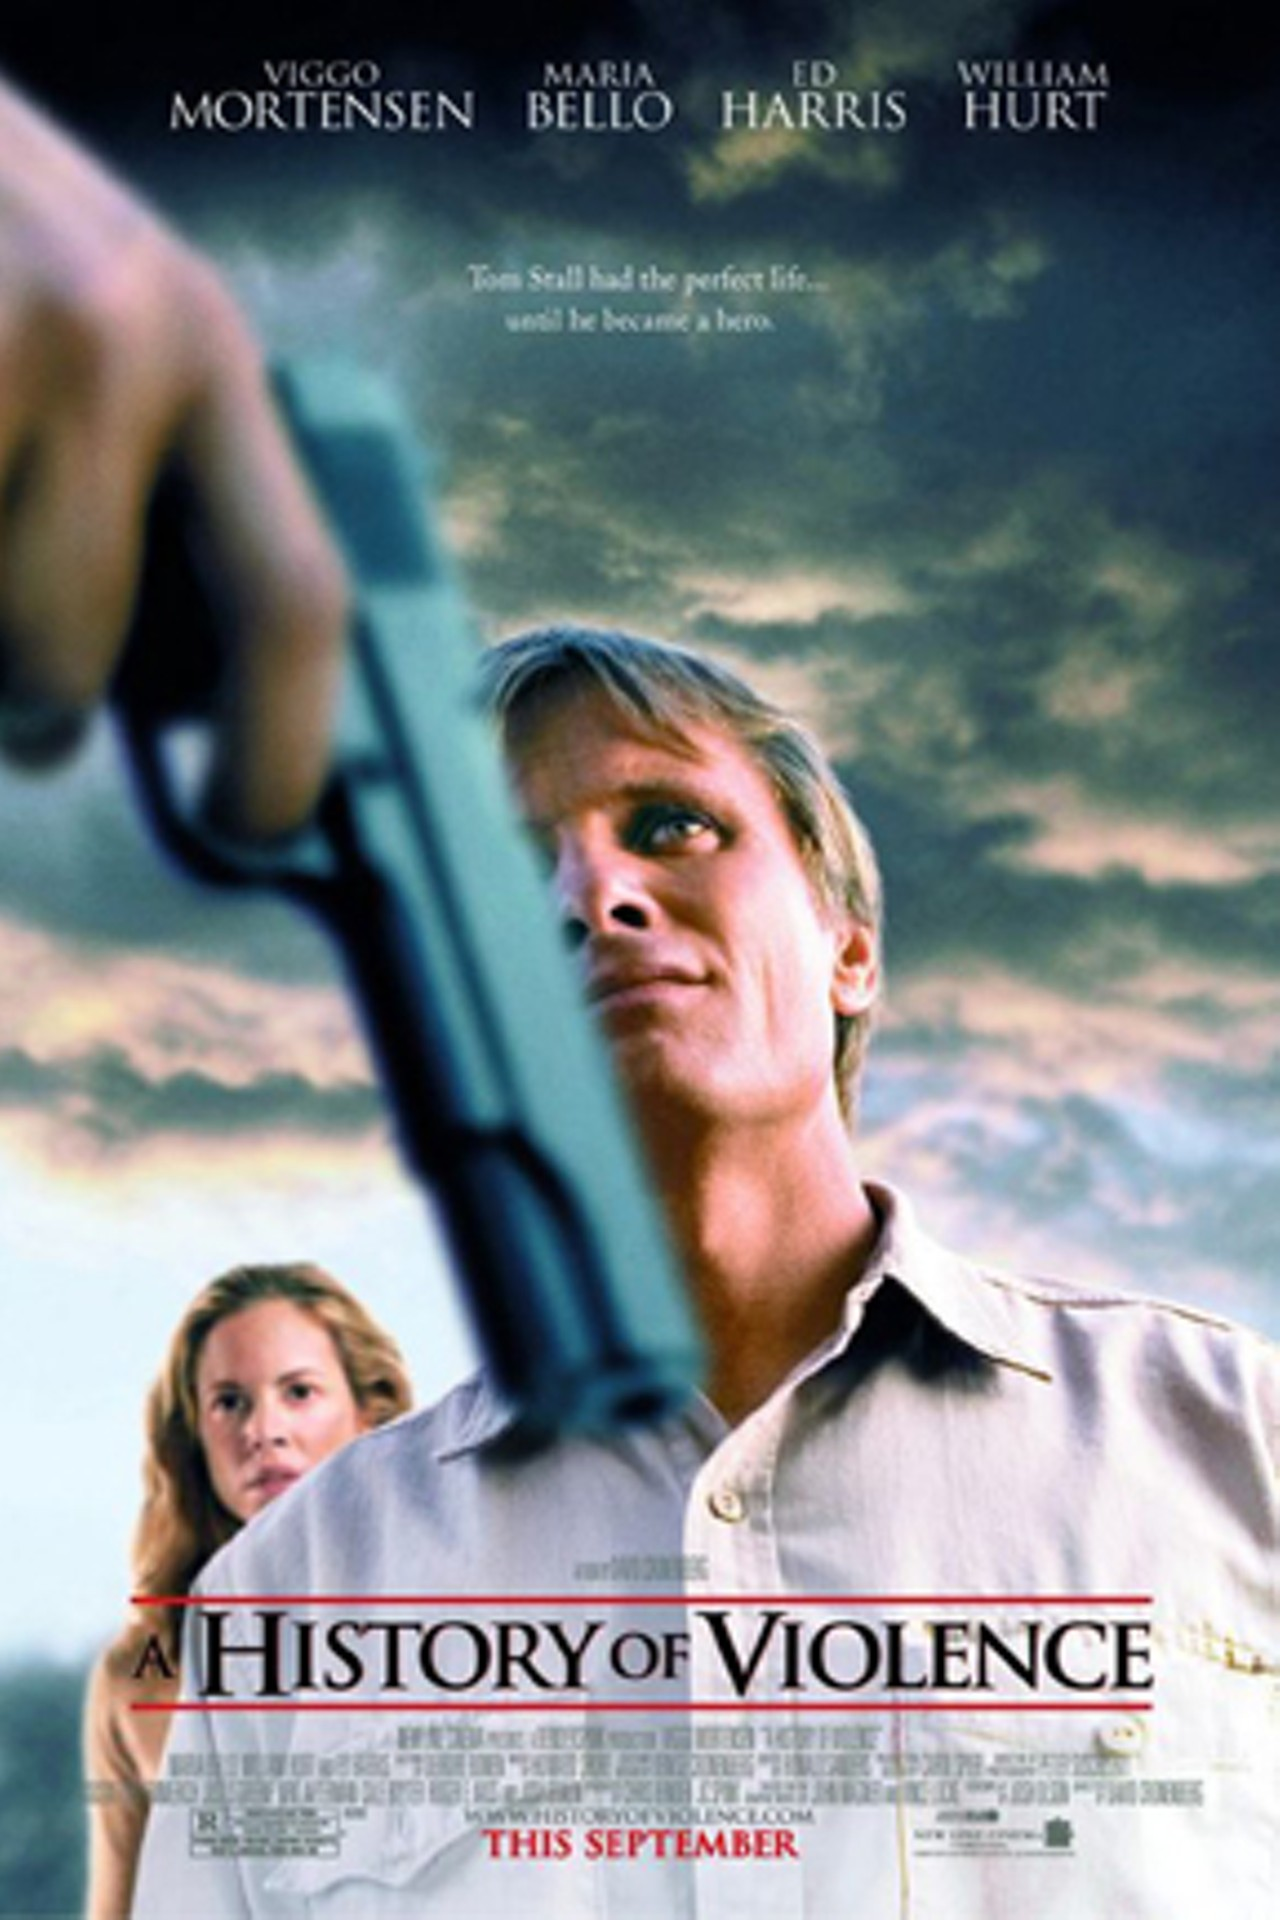 A History of Violence (2005) - Directed by: David CronenbergStarring: Viggo Mortensen, Maria Bello, Ed Harris, Ashton Holmes, William HurtRated: R for Strong Brutal Violence, Graphic Sexuality, Nudity, Language and Some Drug UseRunning Time: 1h 36mTMM Score: 4 StarsSTRENGTHS: Performances, Subversive Writing, DirectionWEAKNESSES: First Act